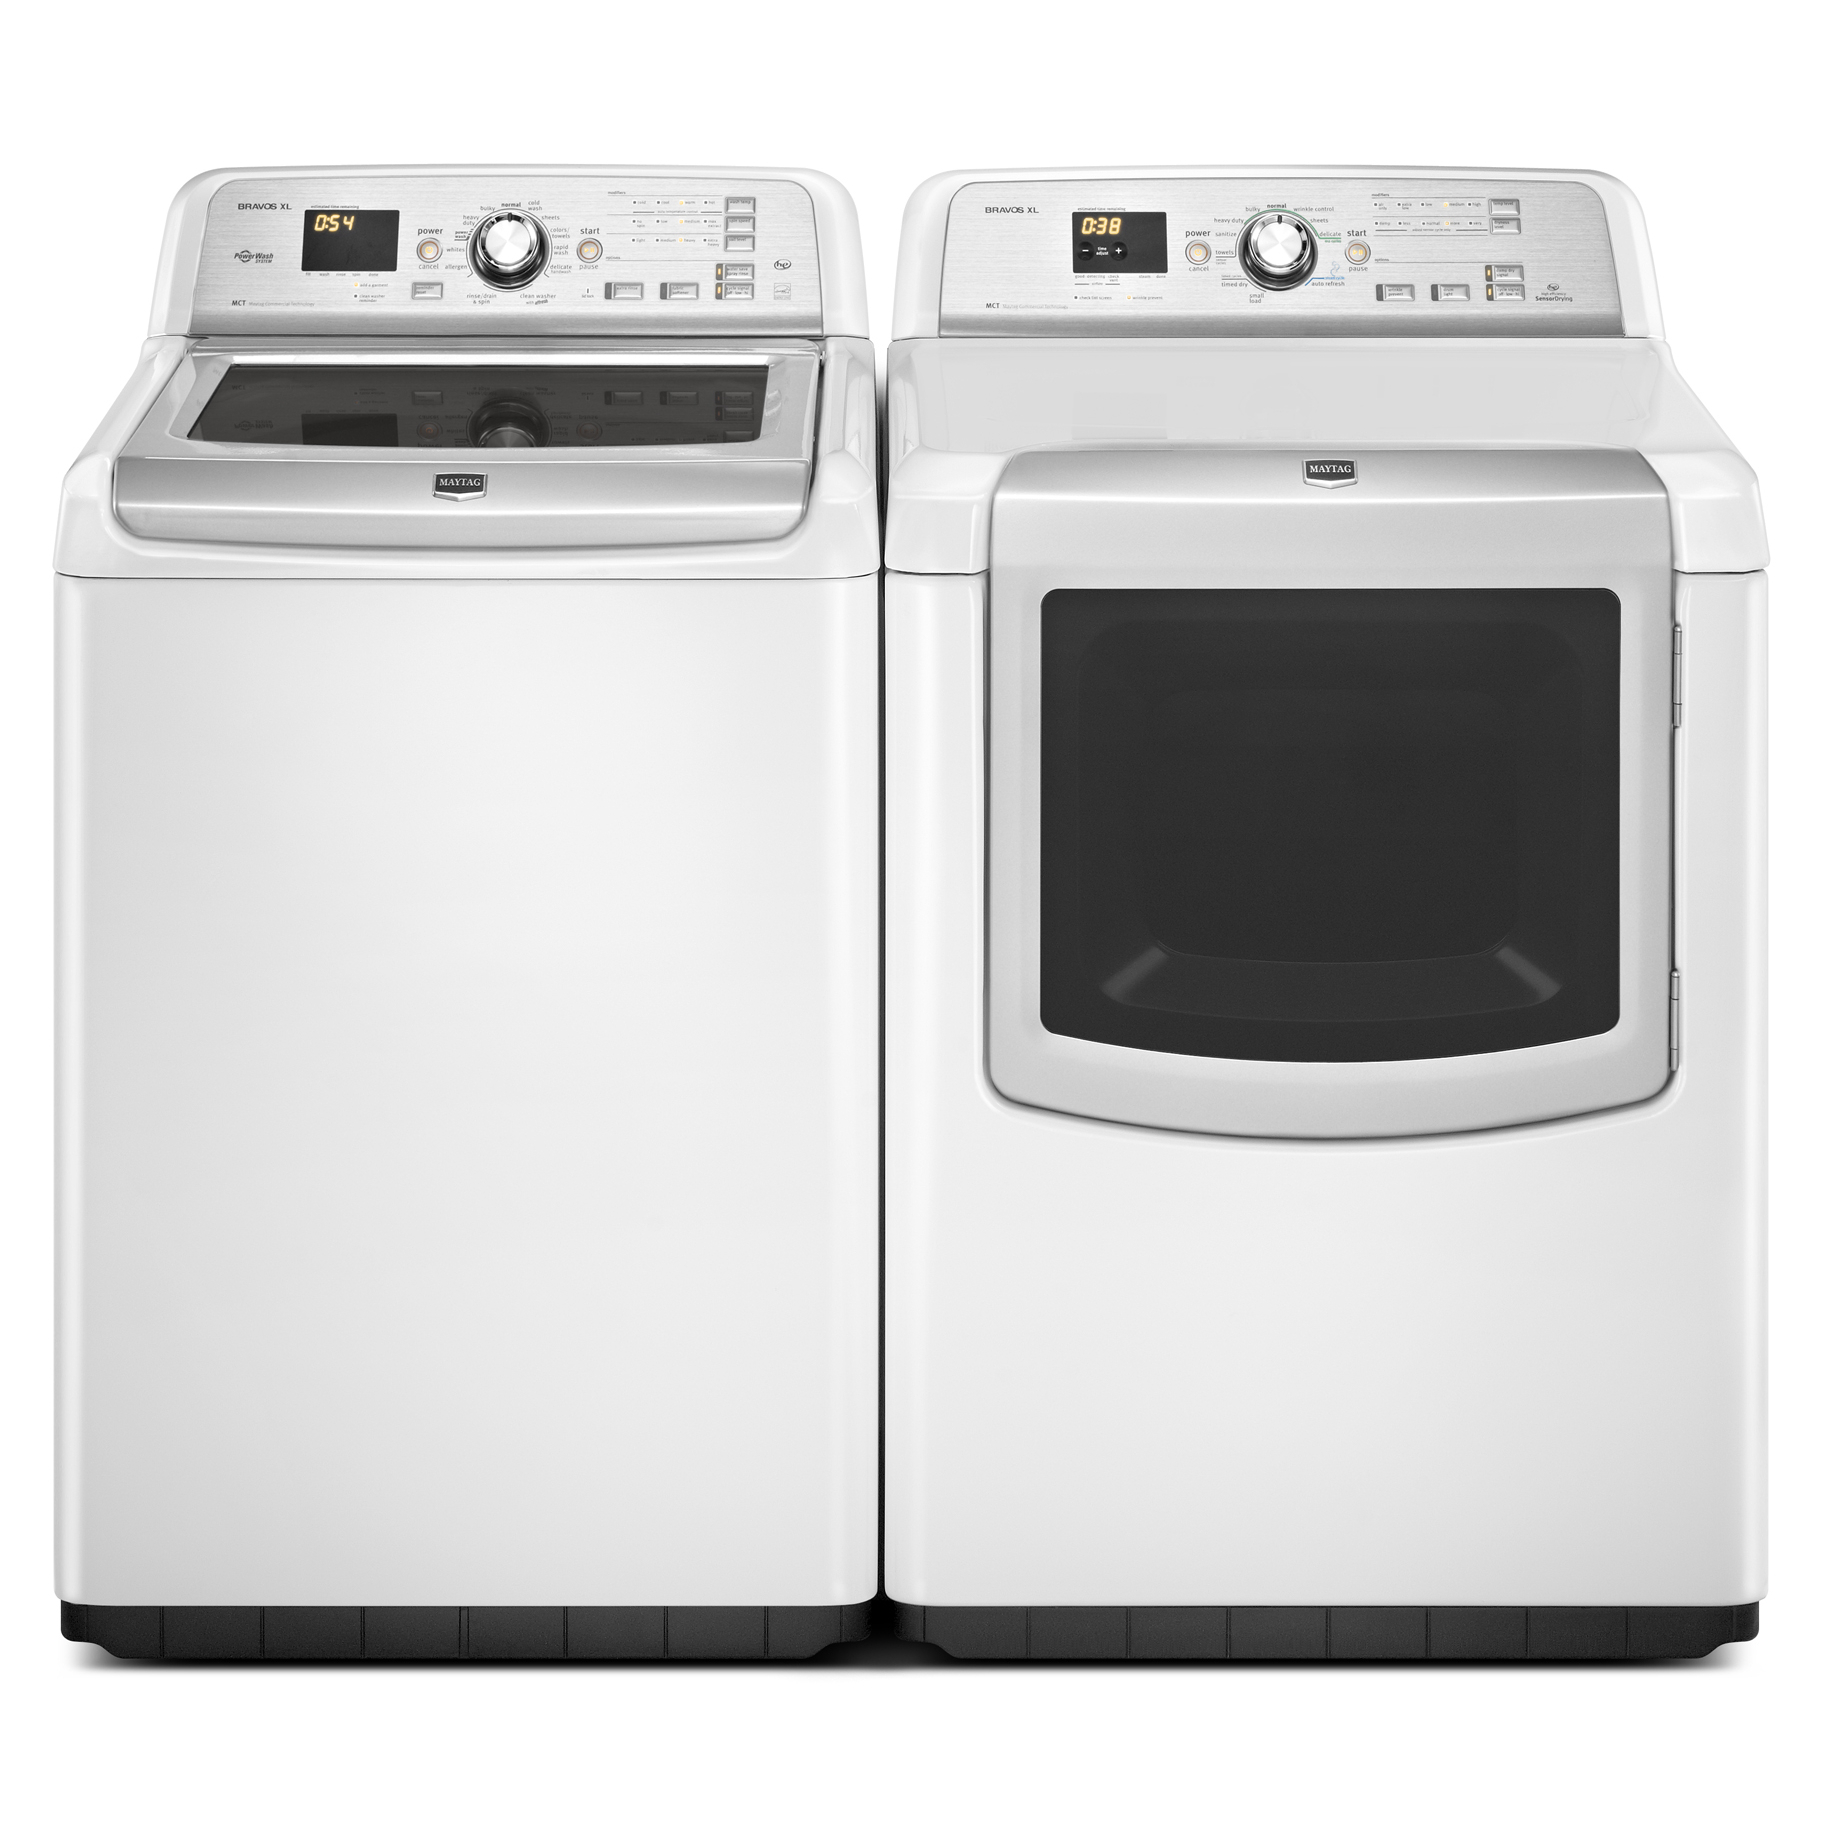 Maytag 7.3 cu. ft. Bravos XL® Gas Dryer w/ Sanitize Cycle - White